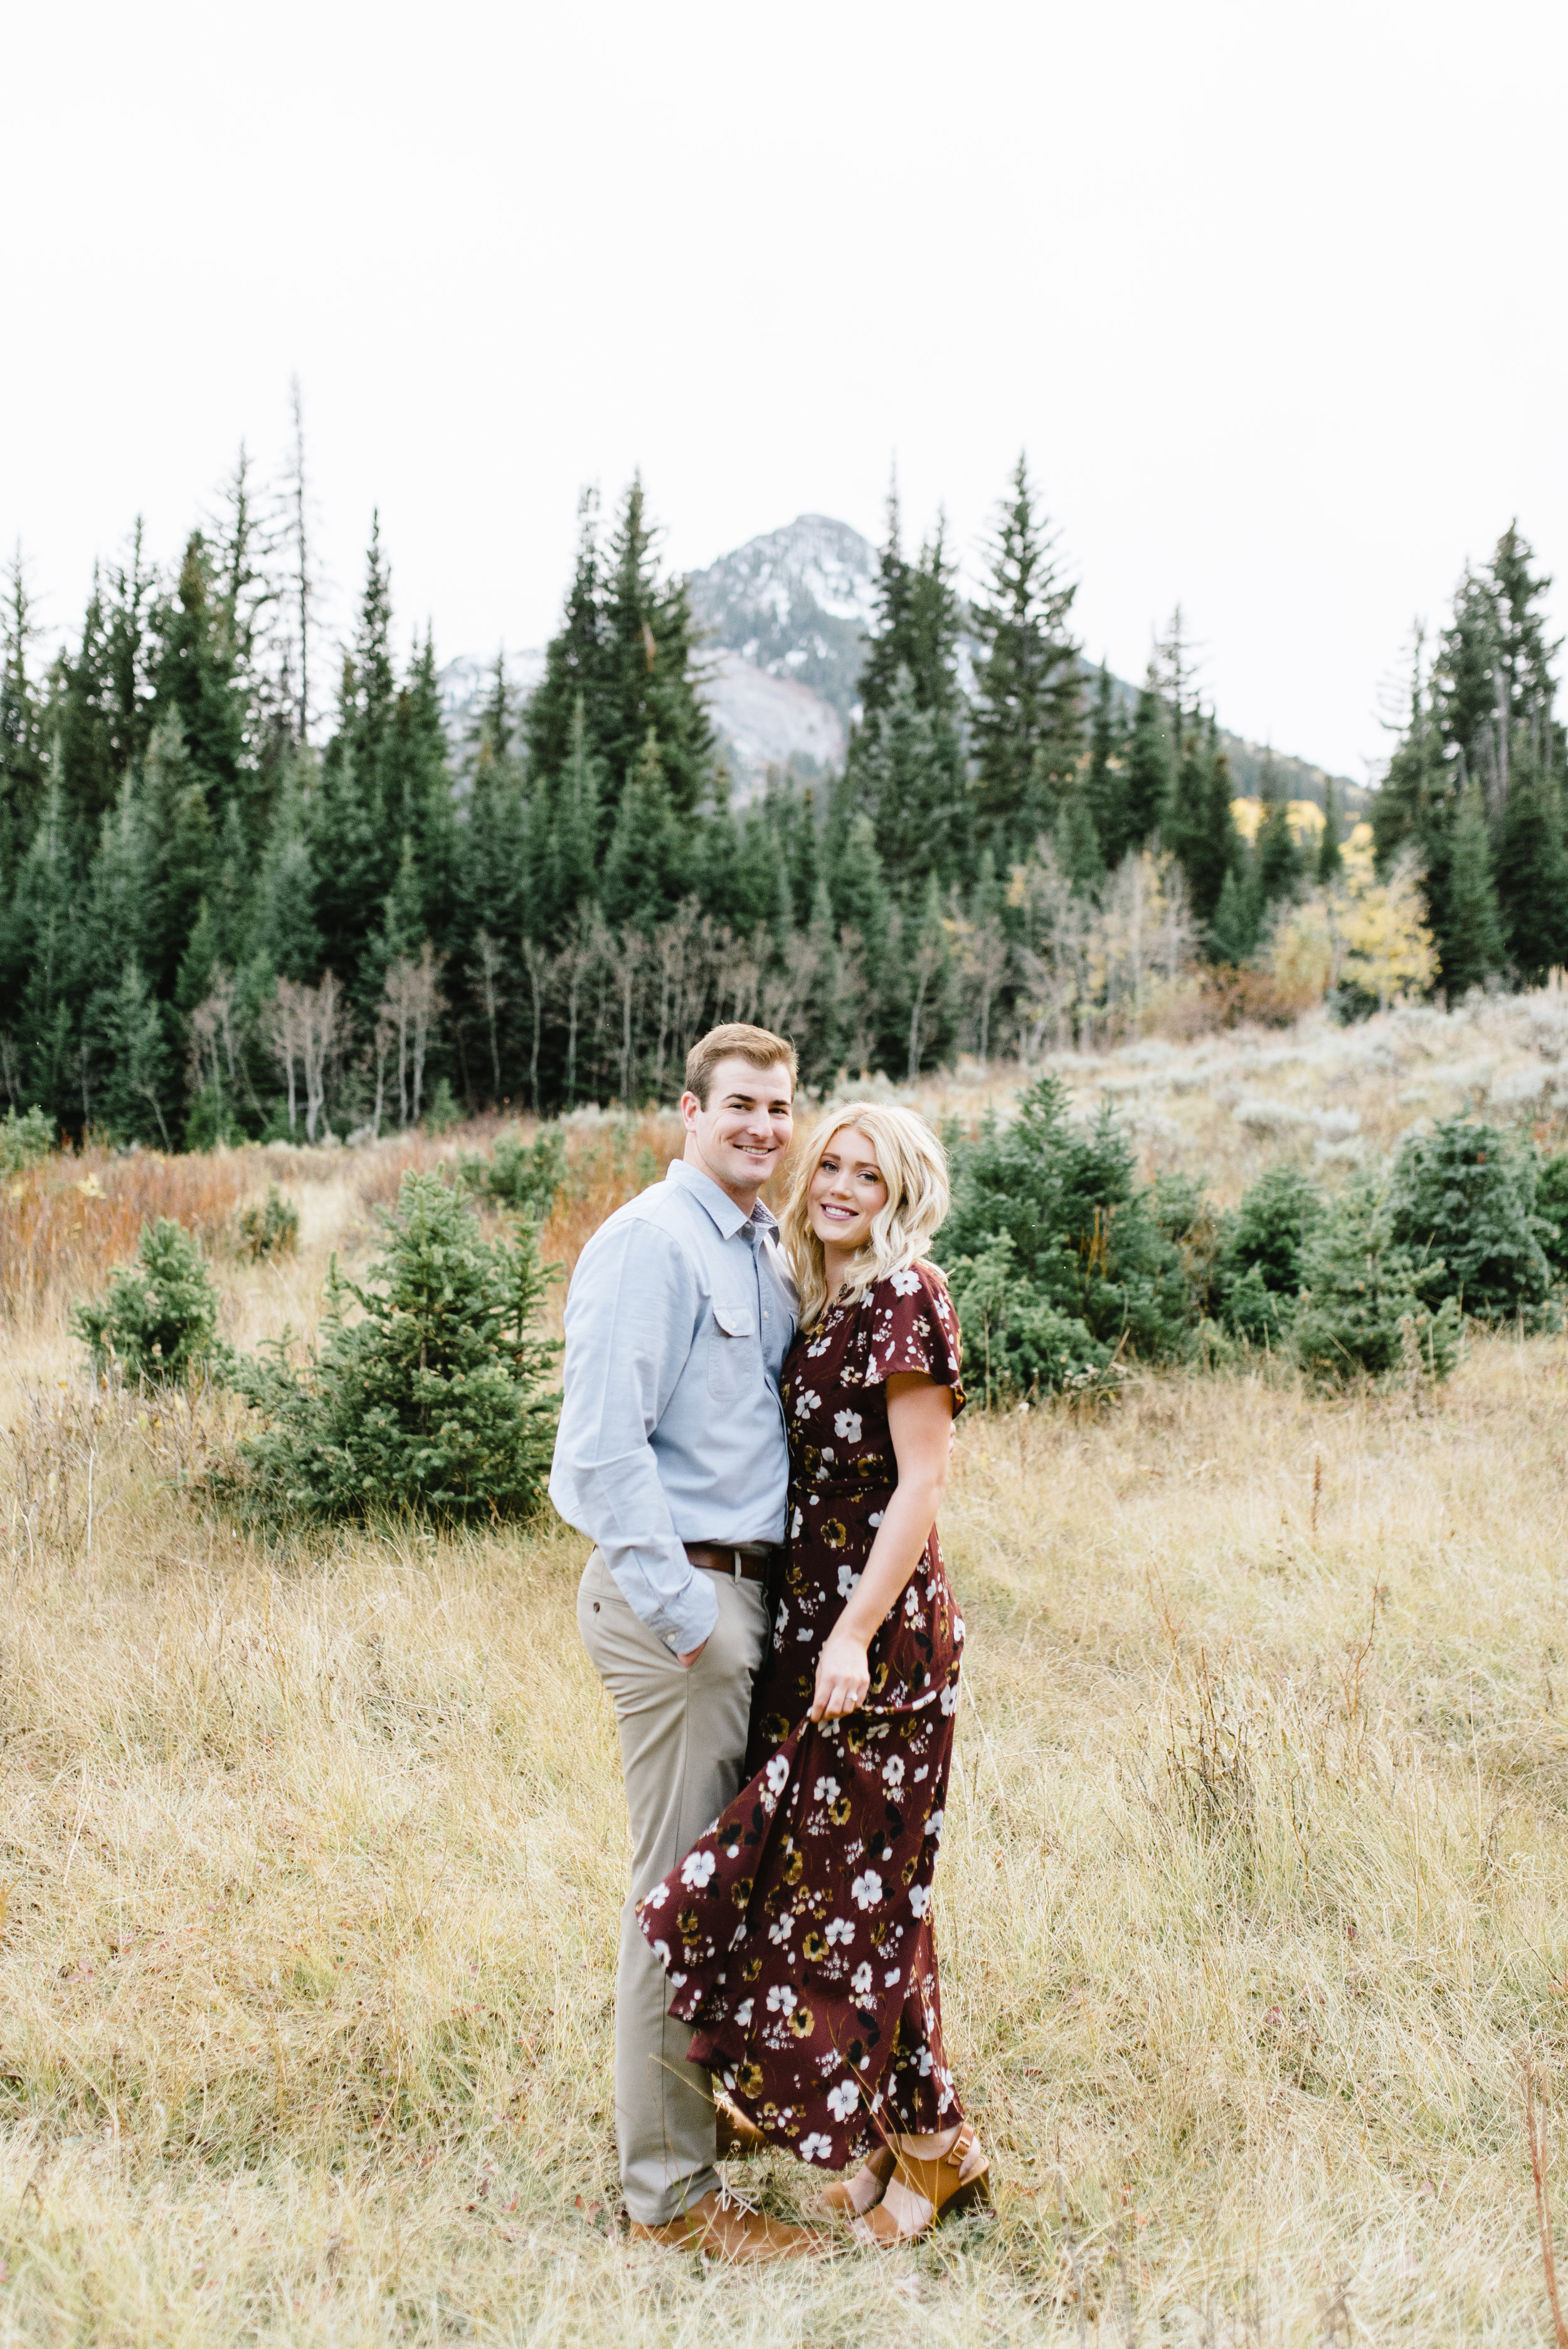 Taylor+Joe Engagements-103.jpg